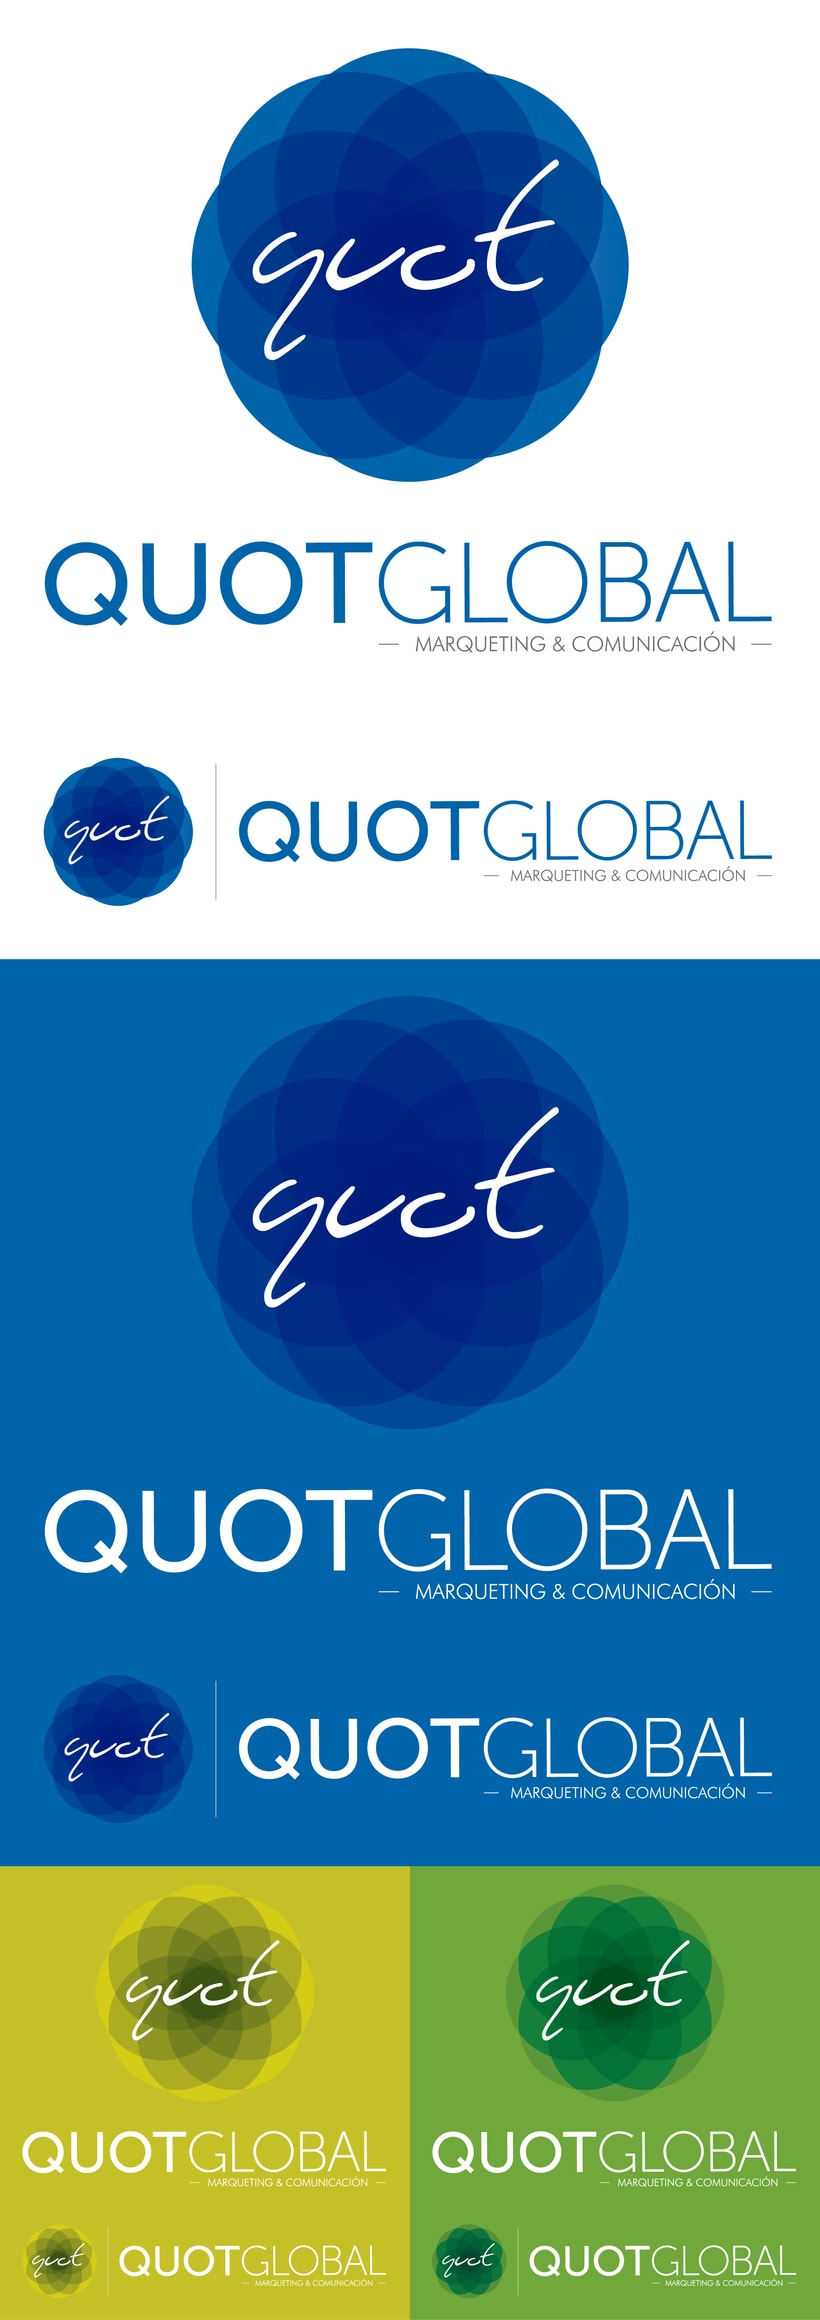 Identidad: QUOT Global (no terminado) 11